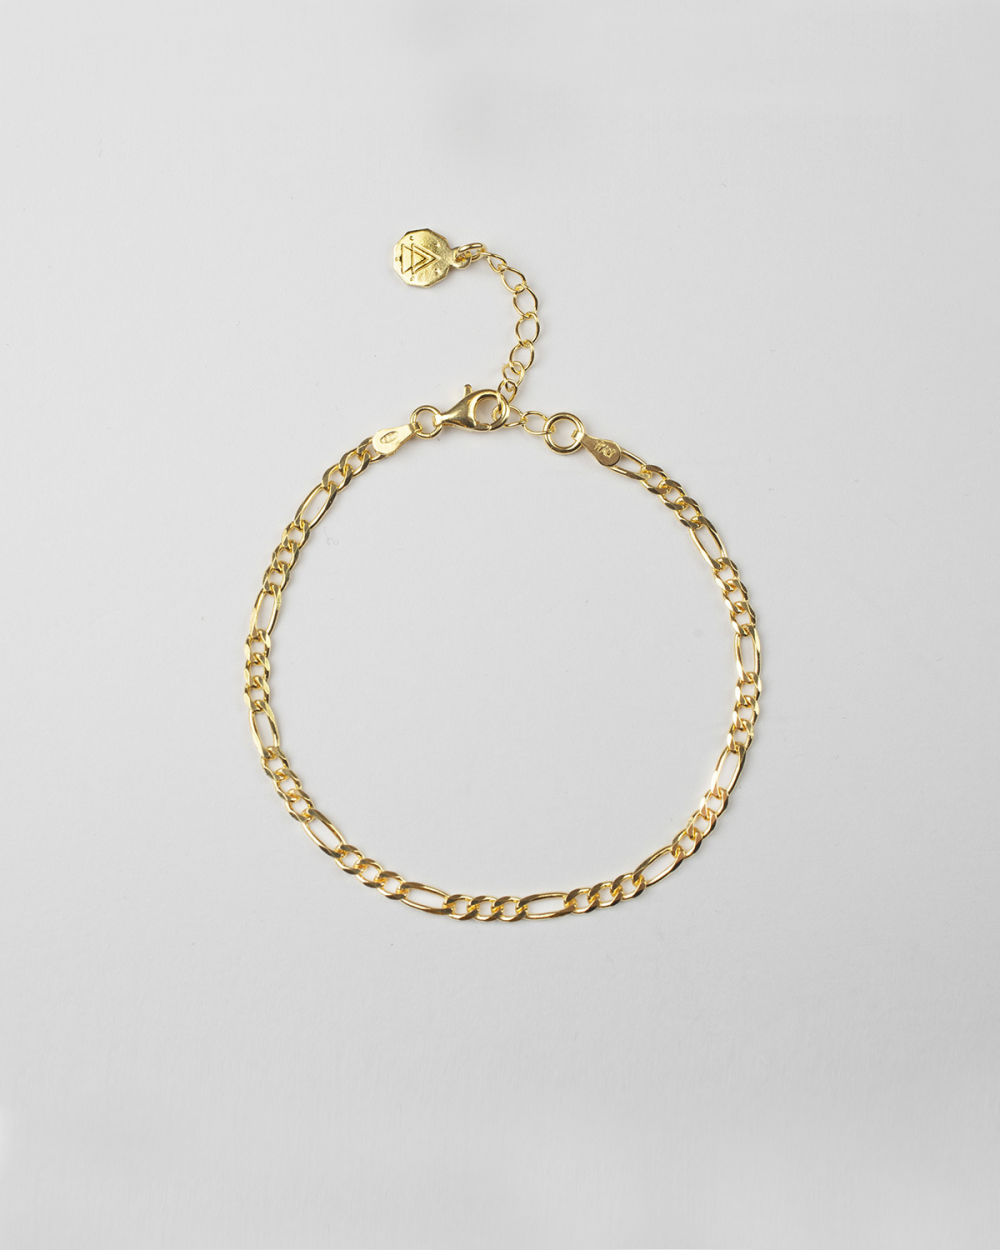 YELLOW GOLD 3+1 CURB CHAIN BRACELET